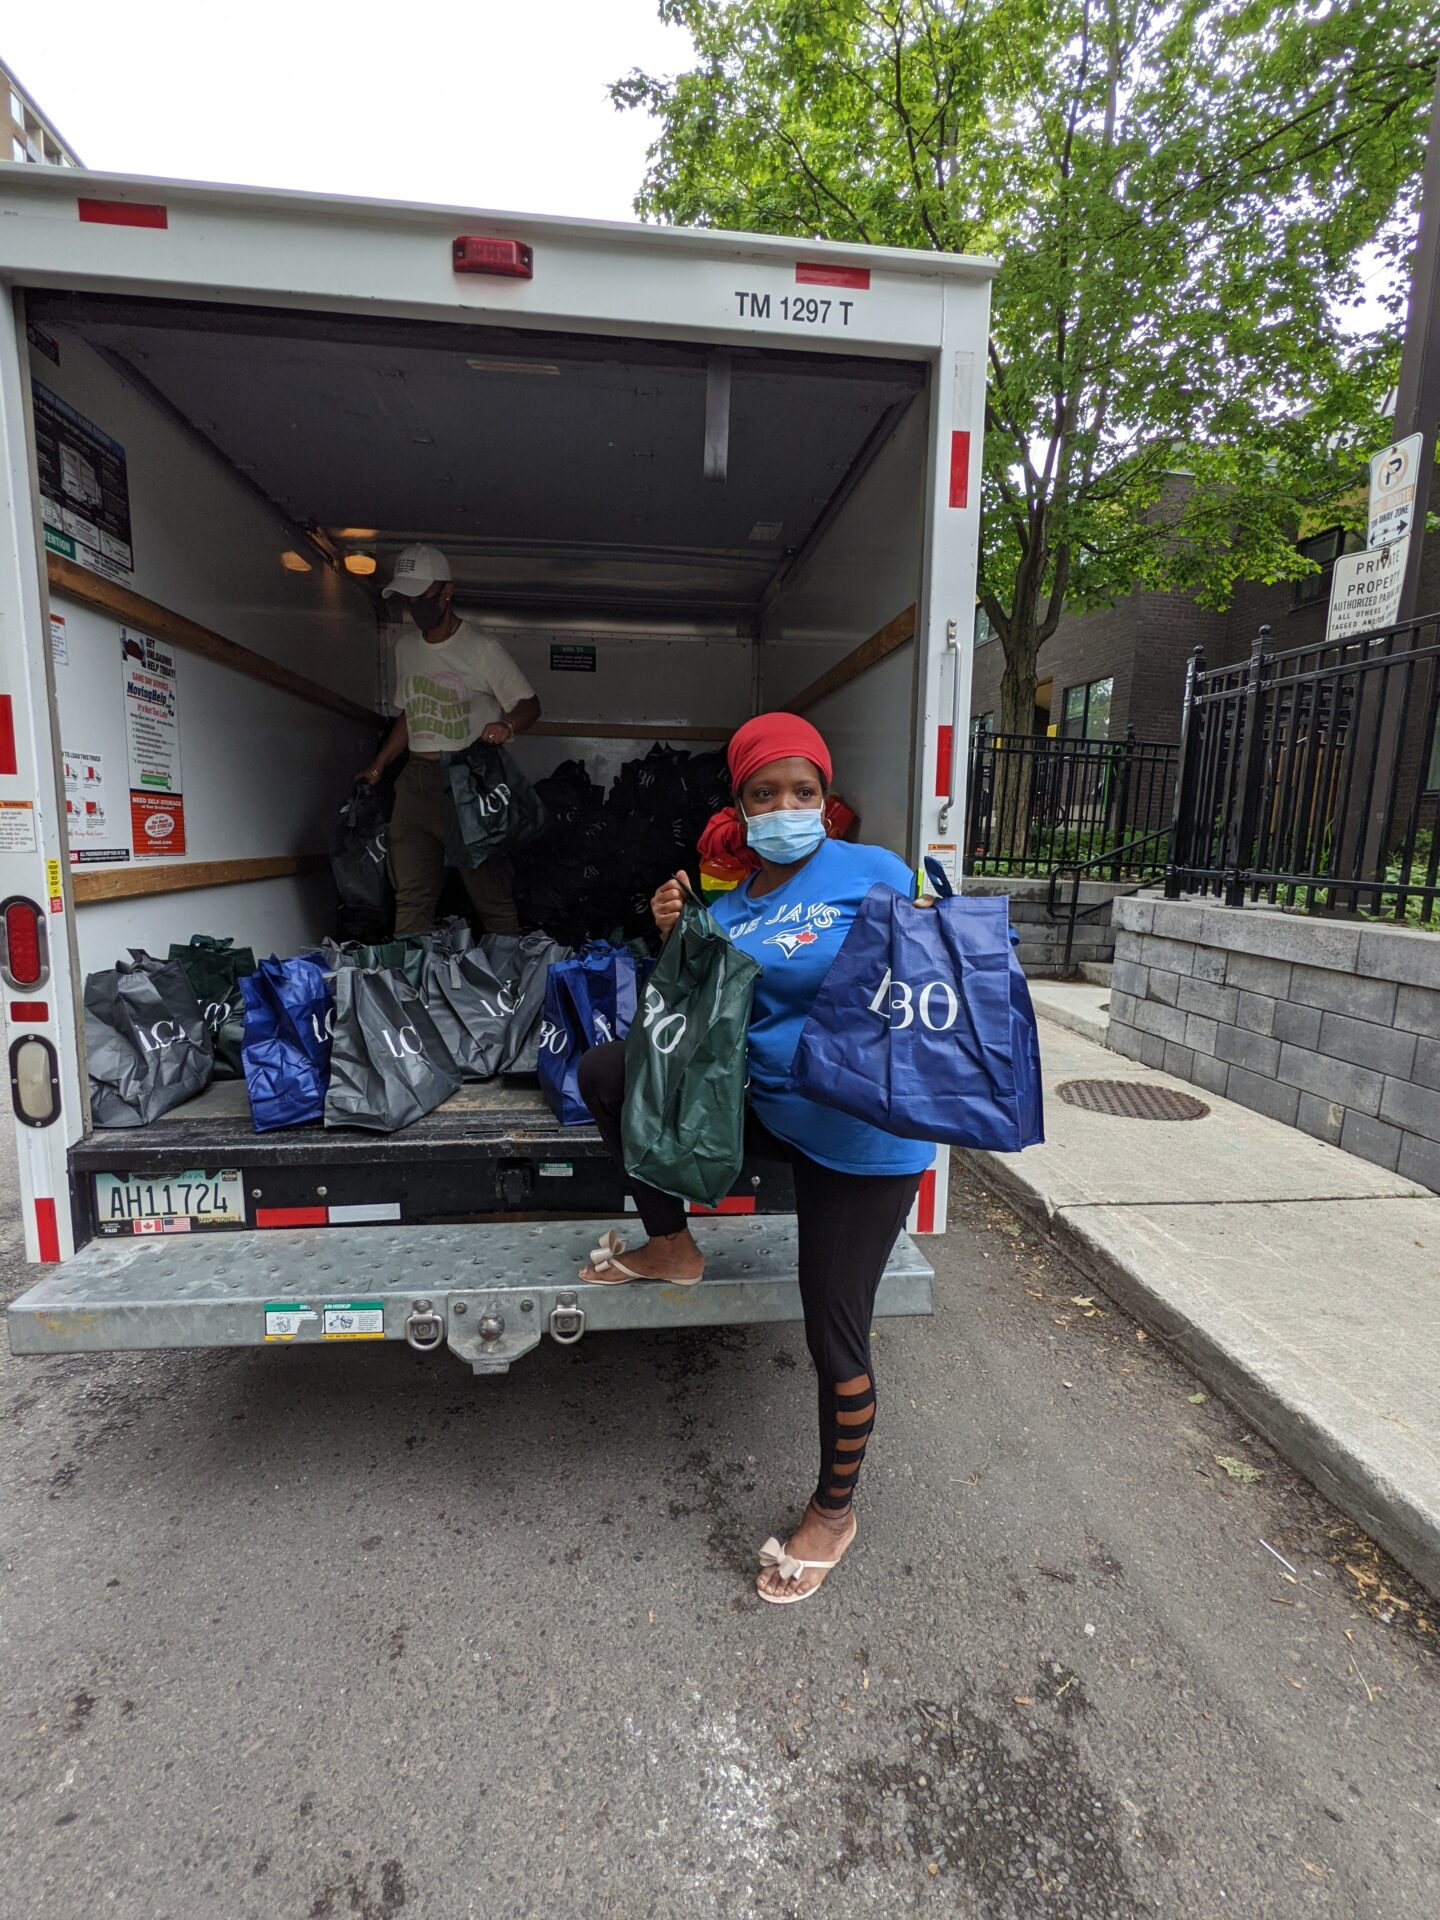 Offloading bags to the community